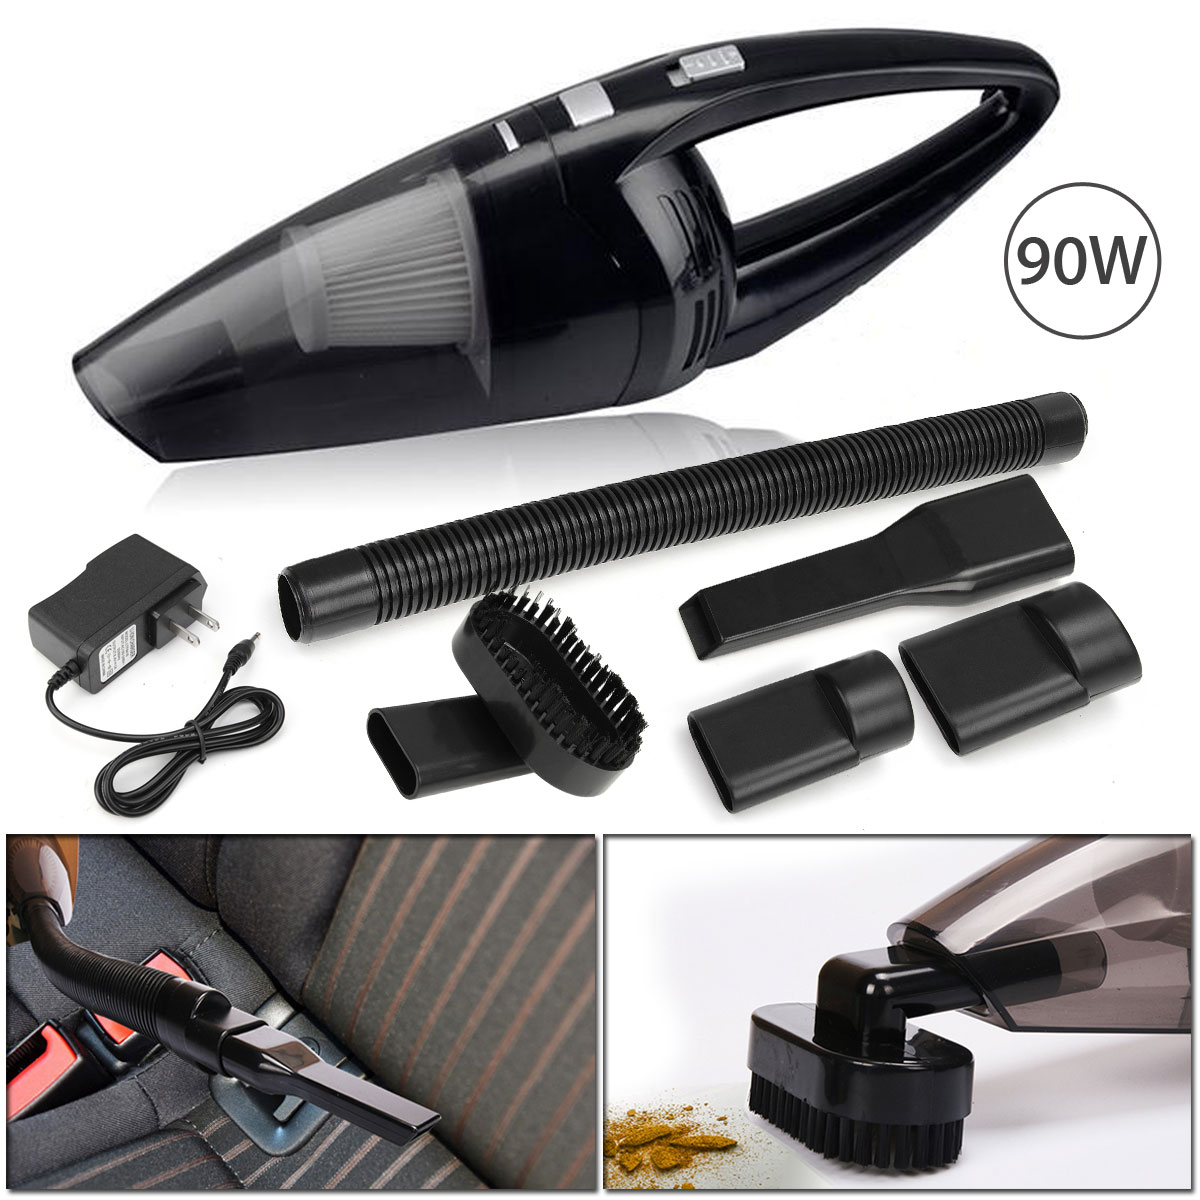 Portable Car Vacuum Cleaner 90W 7.4V Cordless Handheld Cyclonic Car Vacuum Cleaner Wet/Dry Duster Dirt Collector